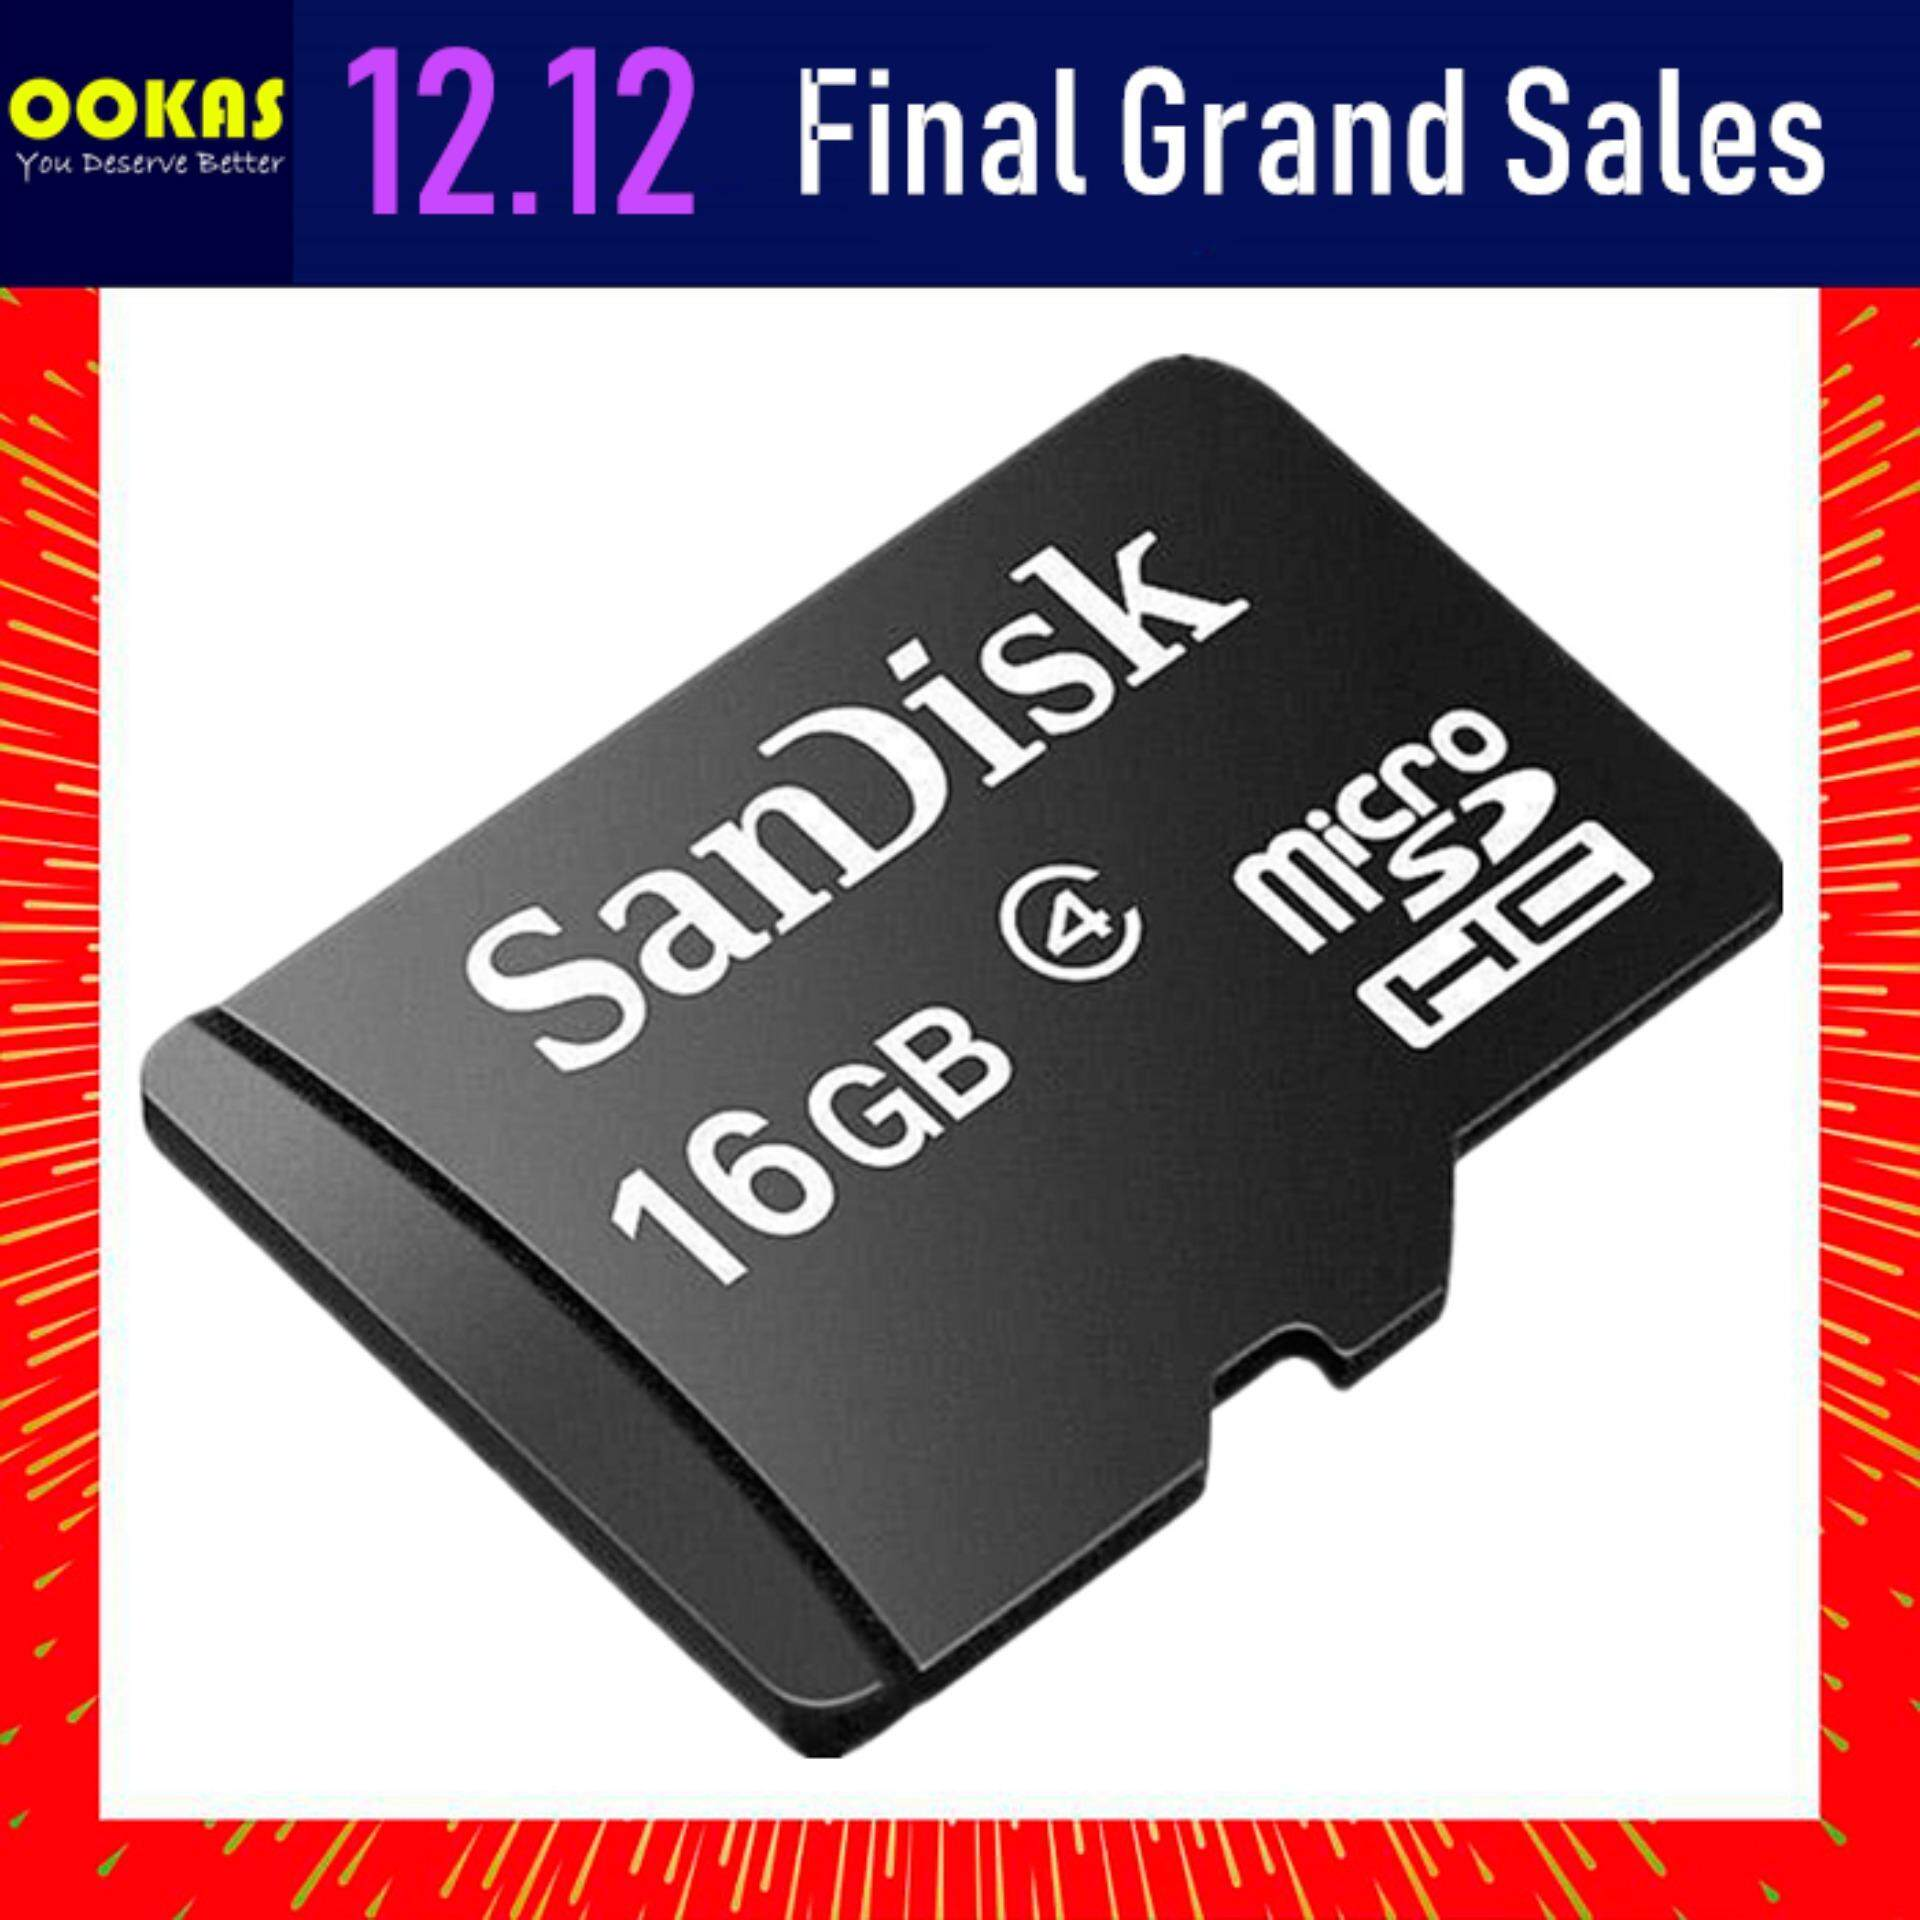 Memory Micro Sd Card With Best Price At Lazada Malaysia Microsd Sandisk 8gb Class 4 32gb 16gb Tf Sdhc